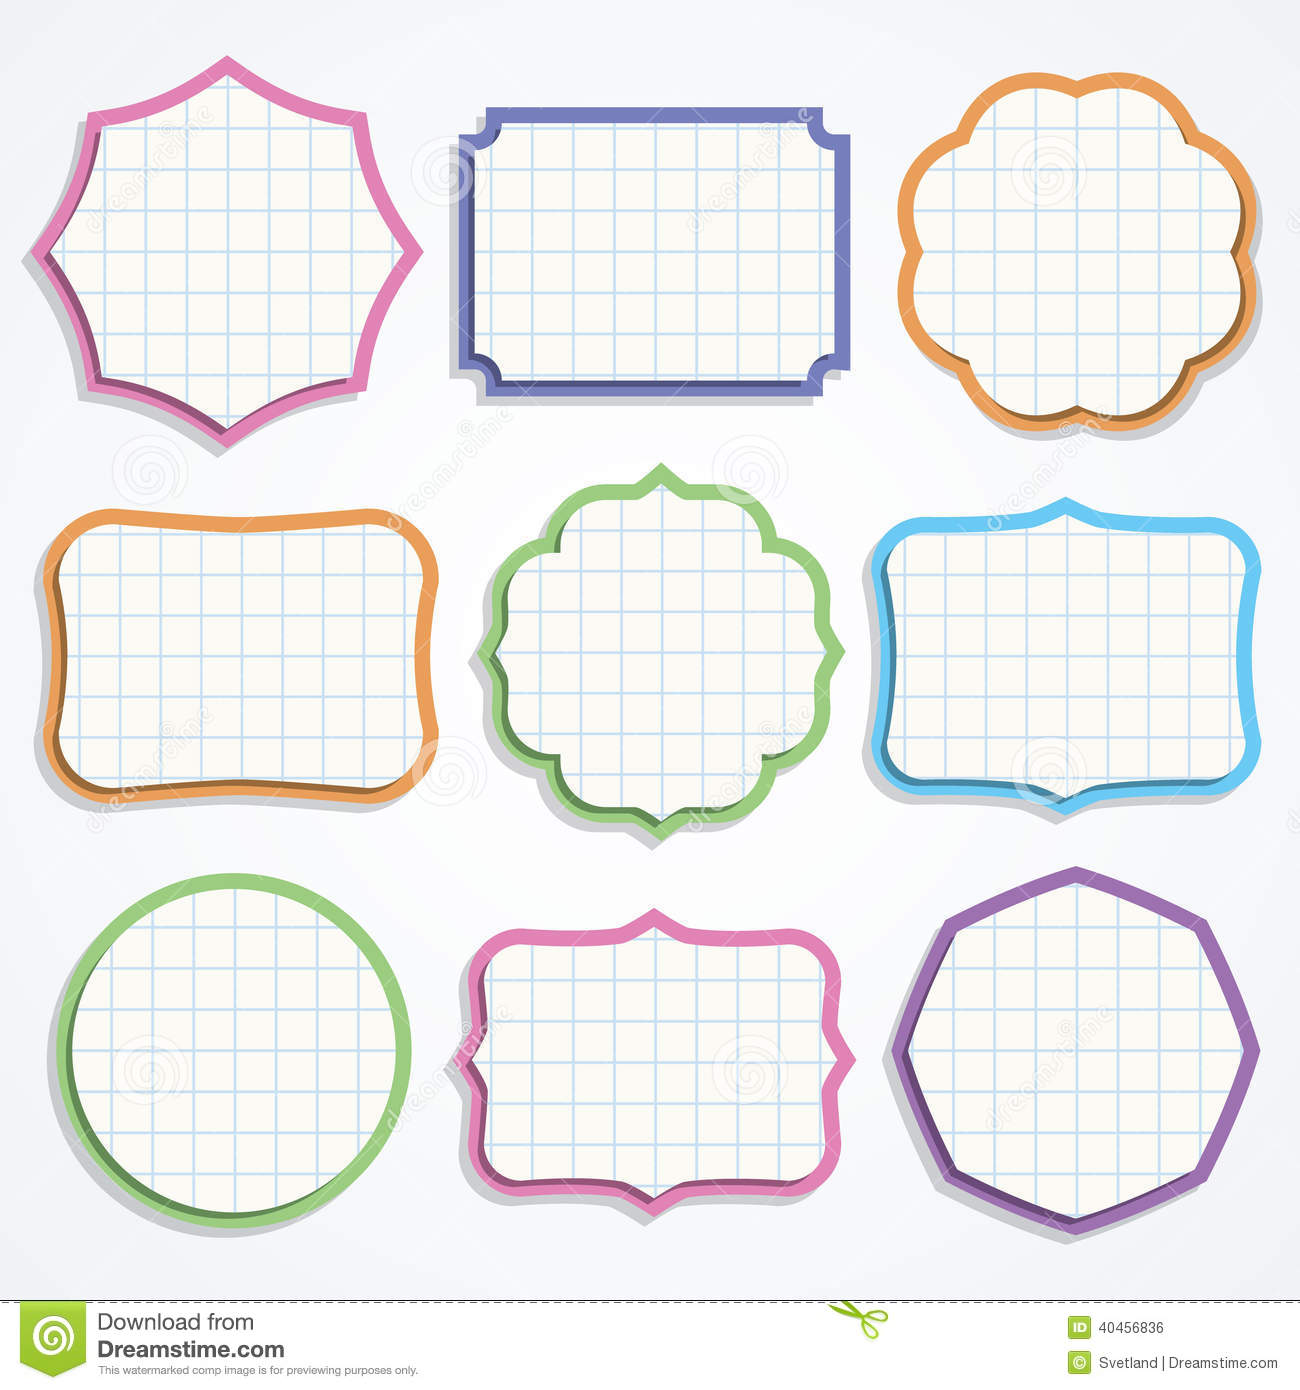 Colorful Note Paper Shapes. Stock Vector - Image: 40456836